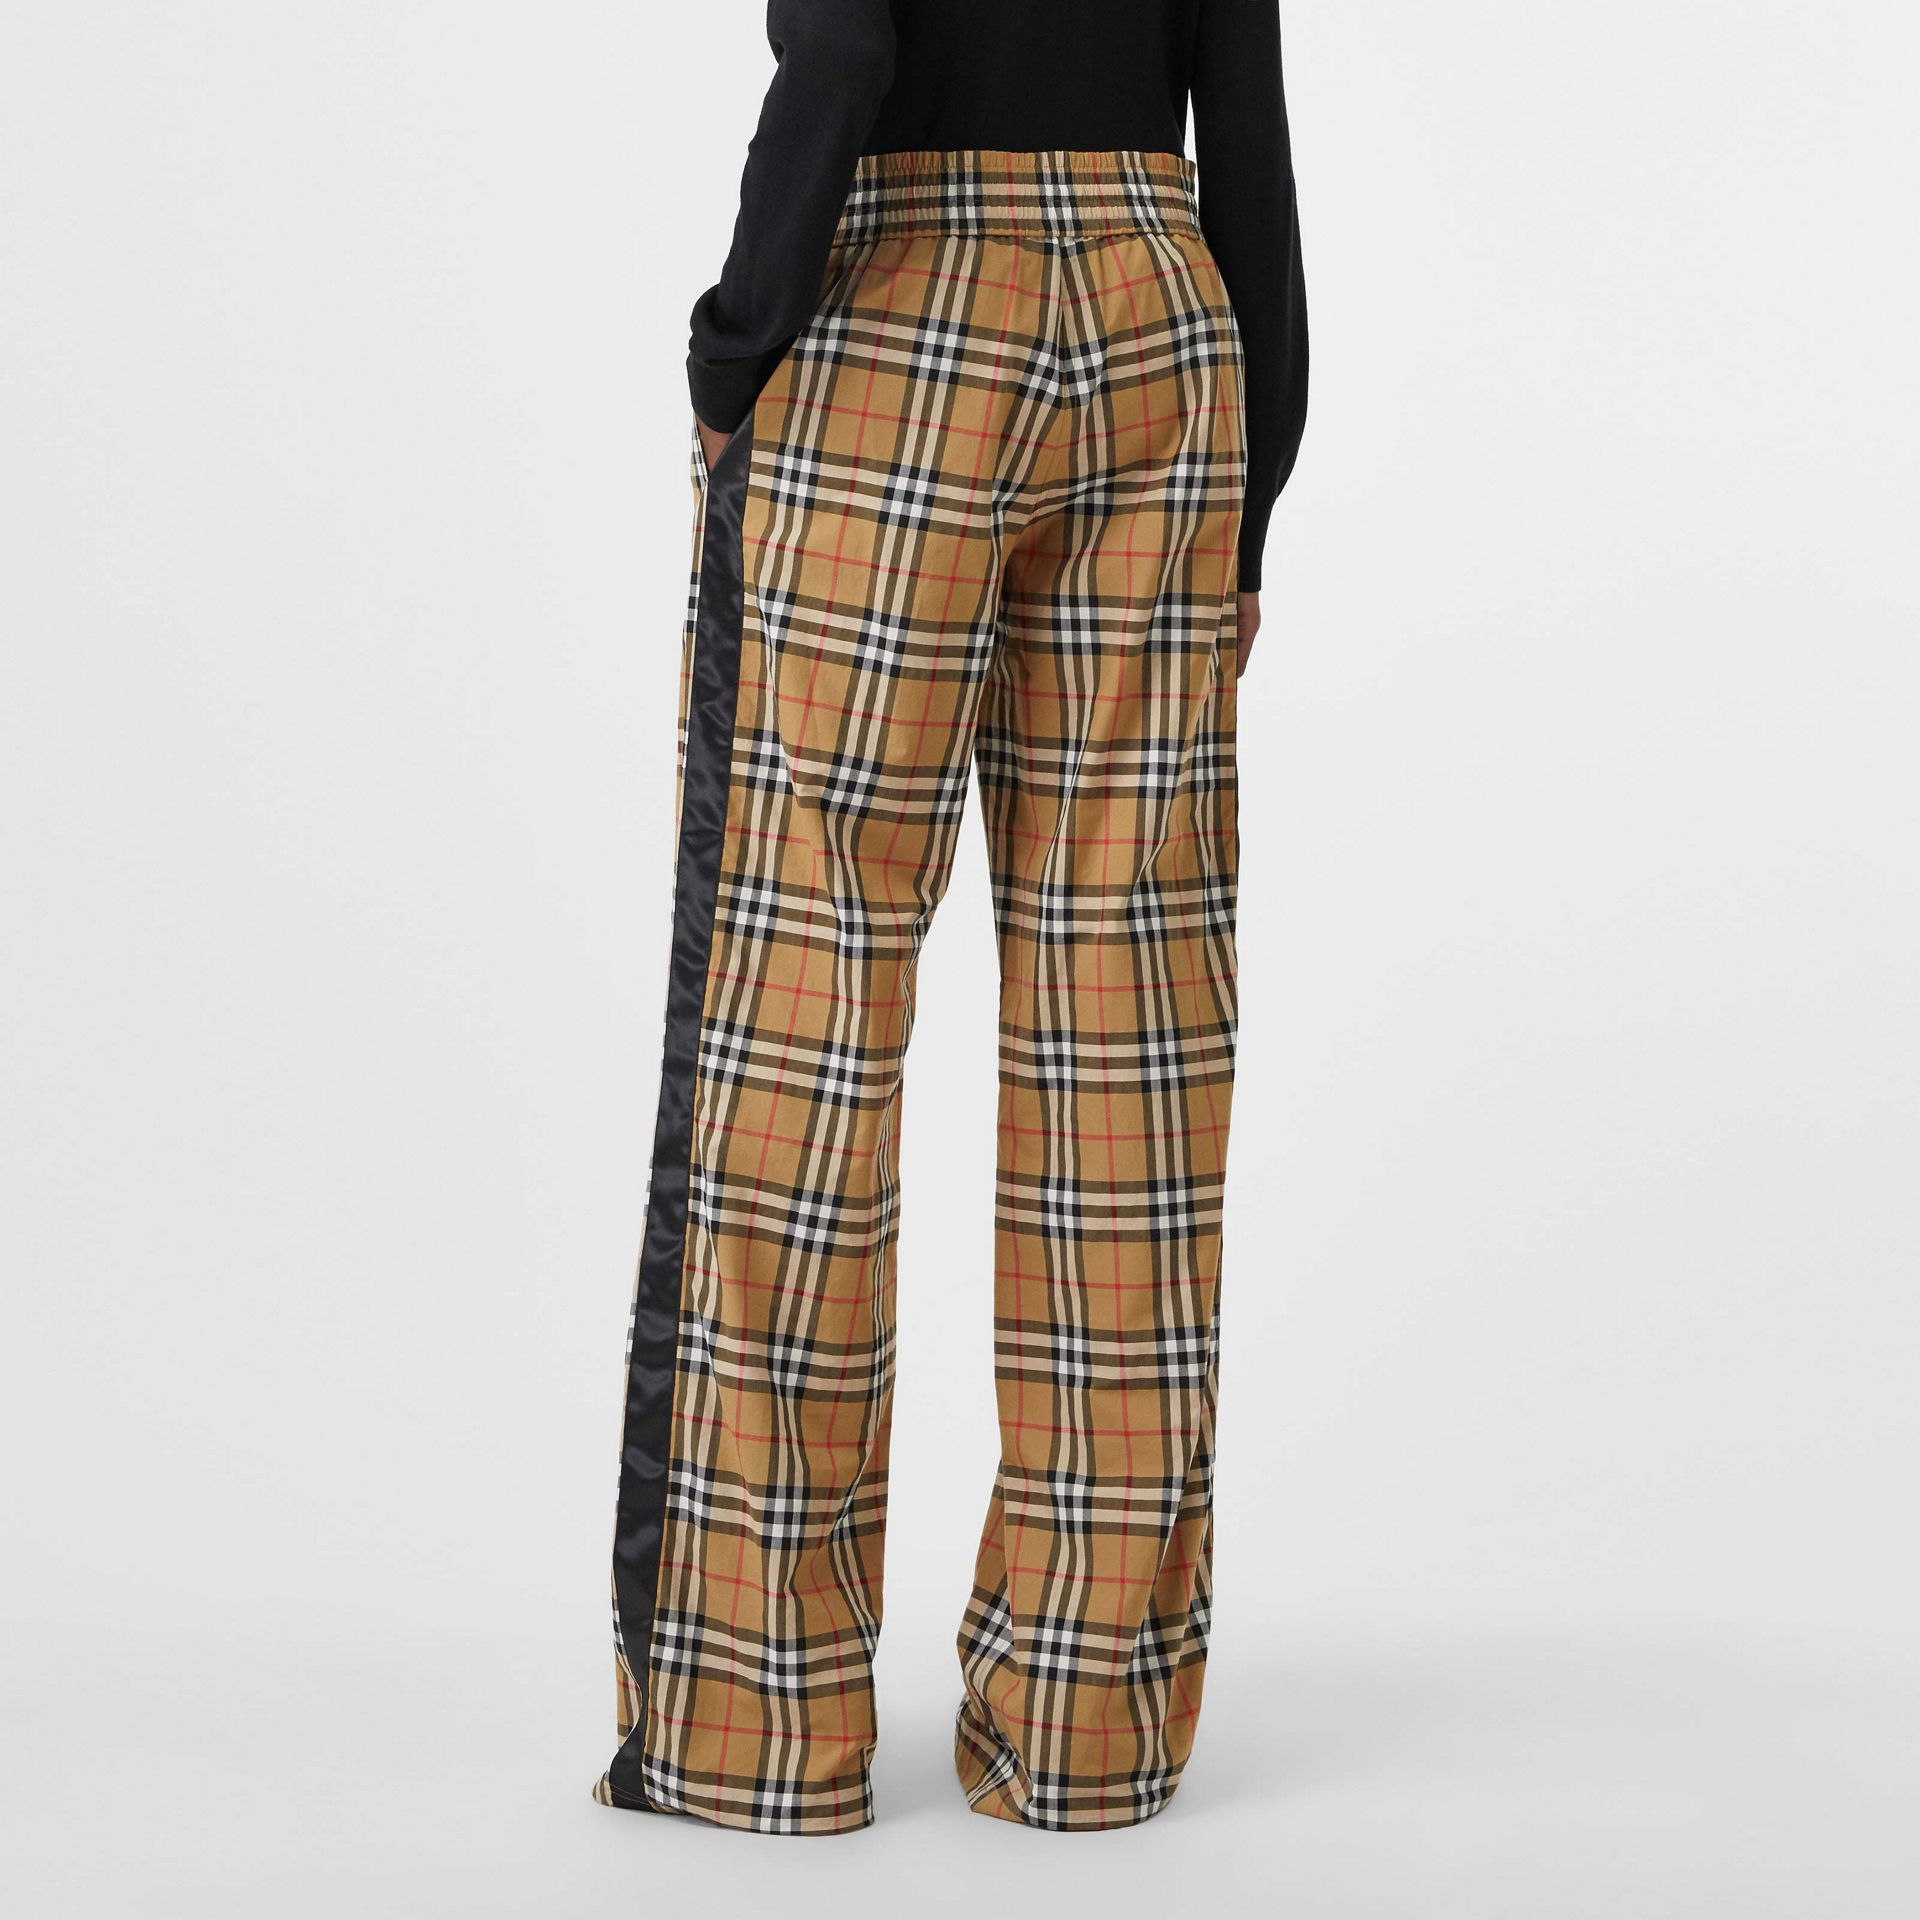 Satin Trim Vintage Check Cotton Trousers in Antique Yellow - Women | Burberry - gallery image 2